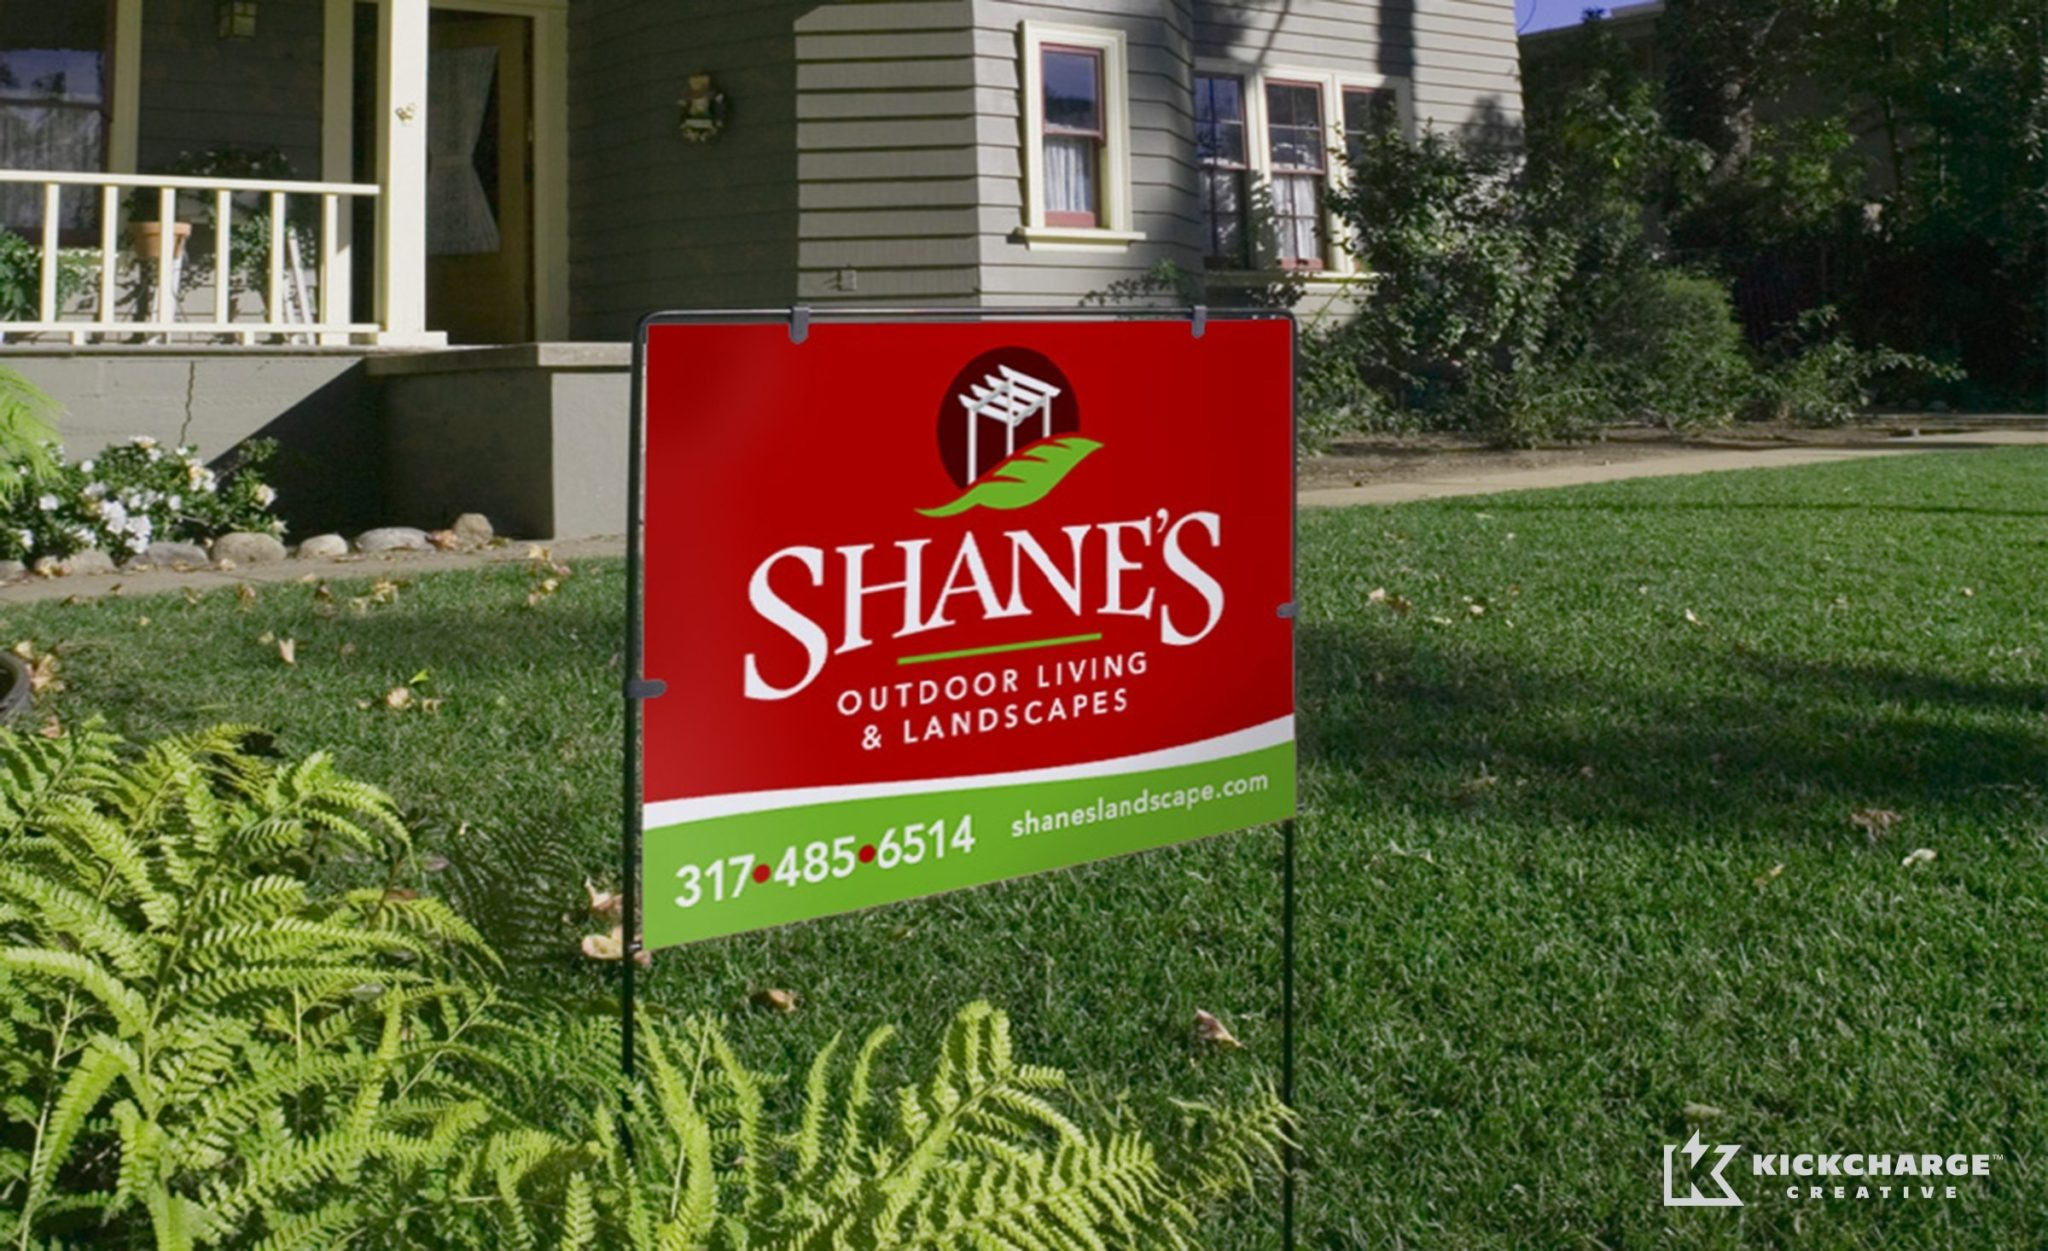 Yard sign design for a premier landscape provider in Indiana.